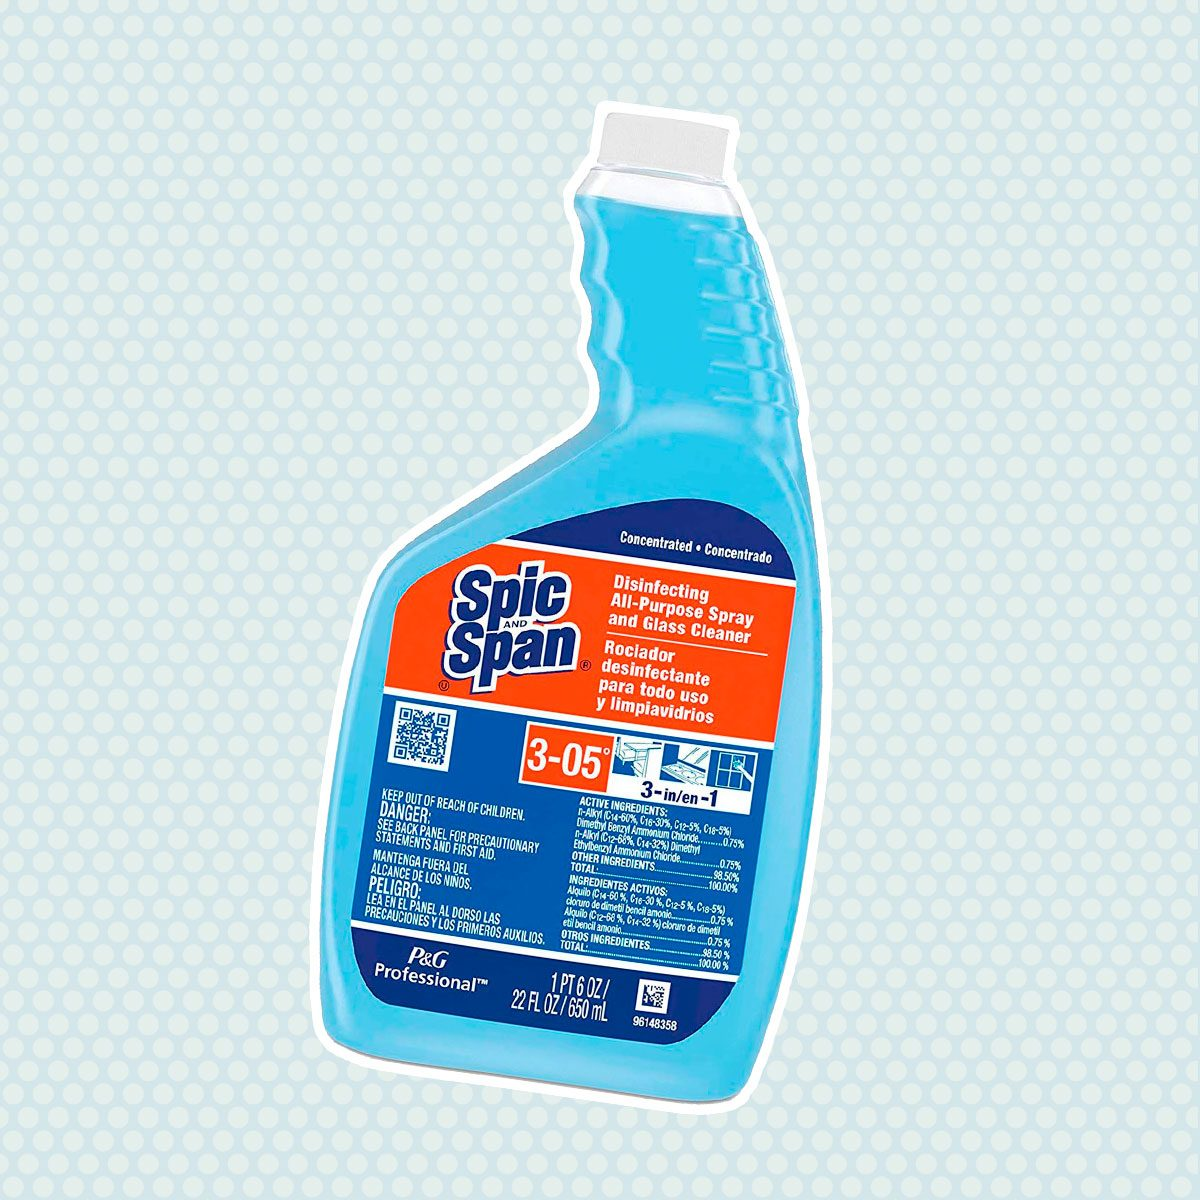 Spic and Span 08636 Disinfecting All-Purpose Spray & Glass Cleaner, Concentrate Liquid, 22oz (Case of 3)